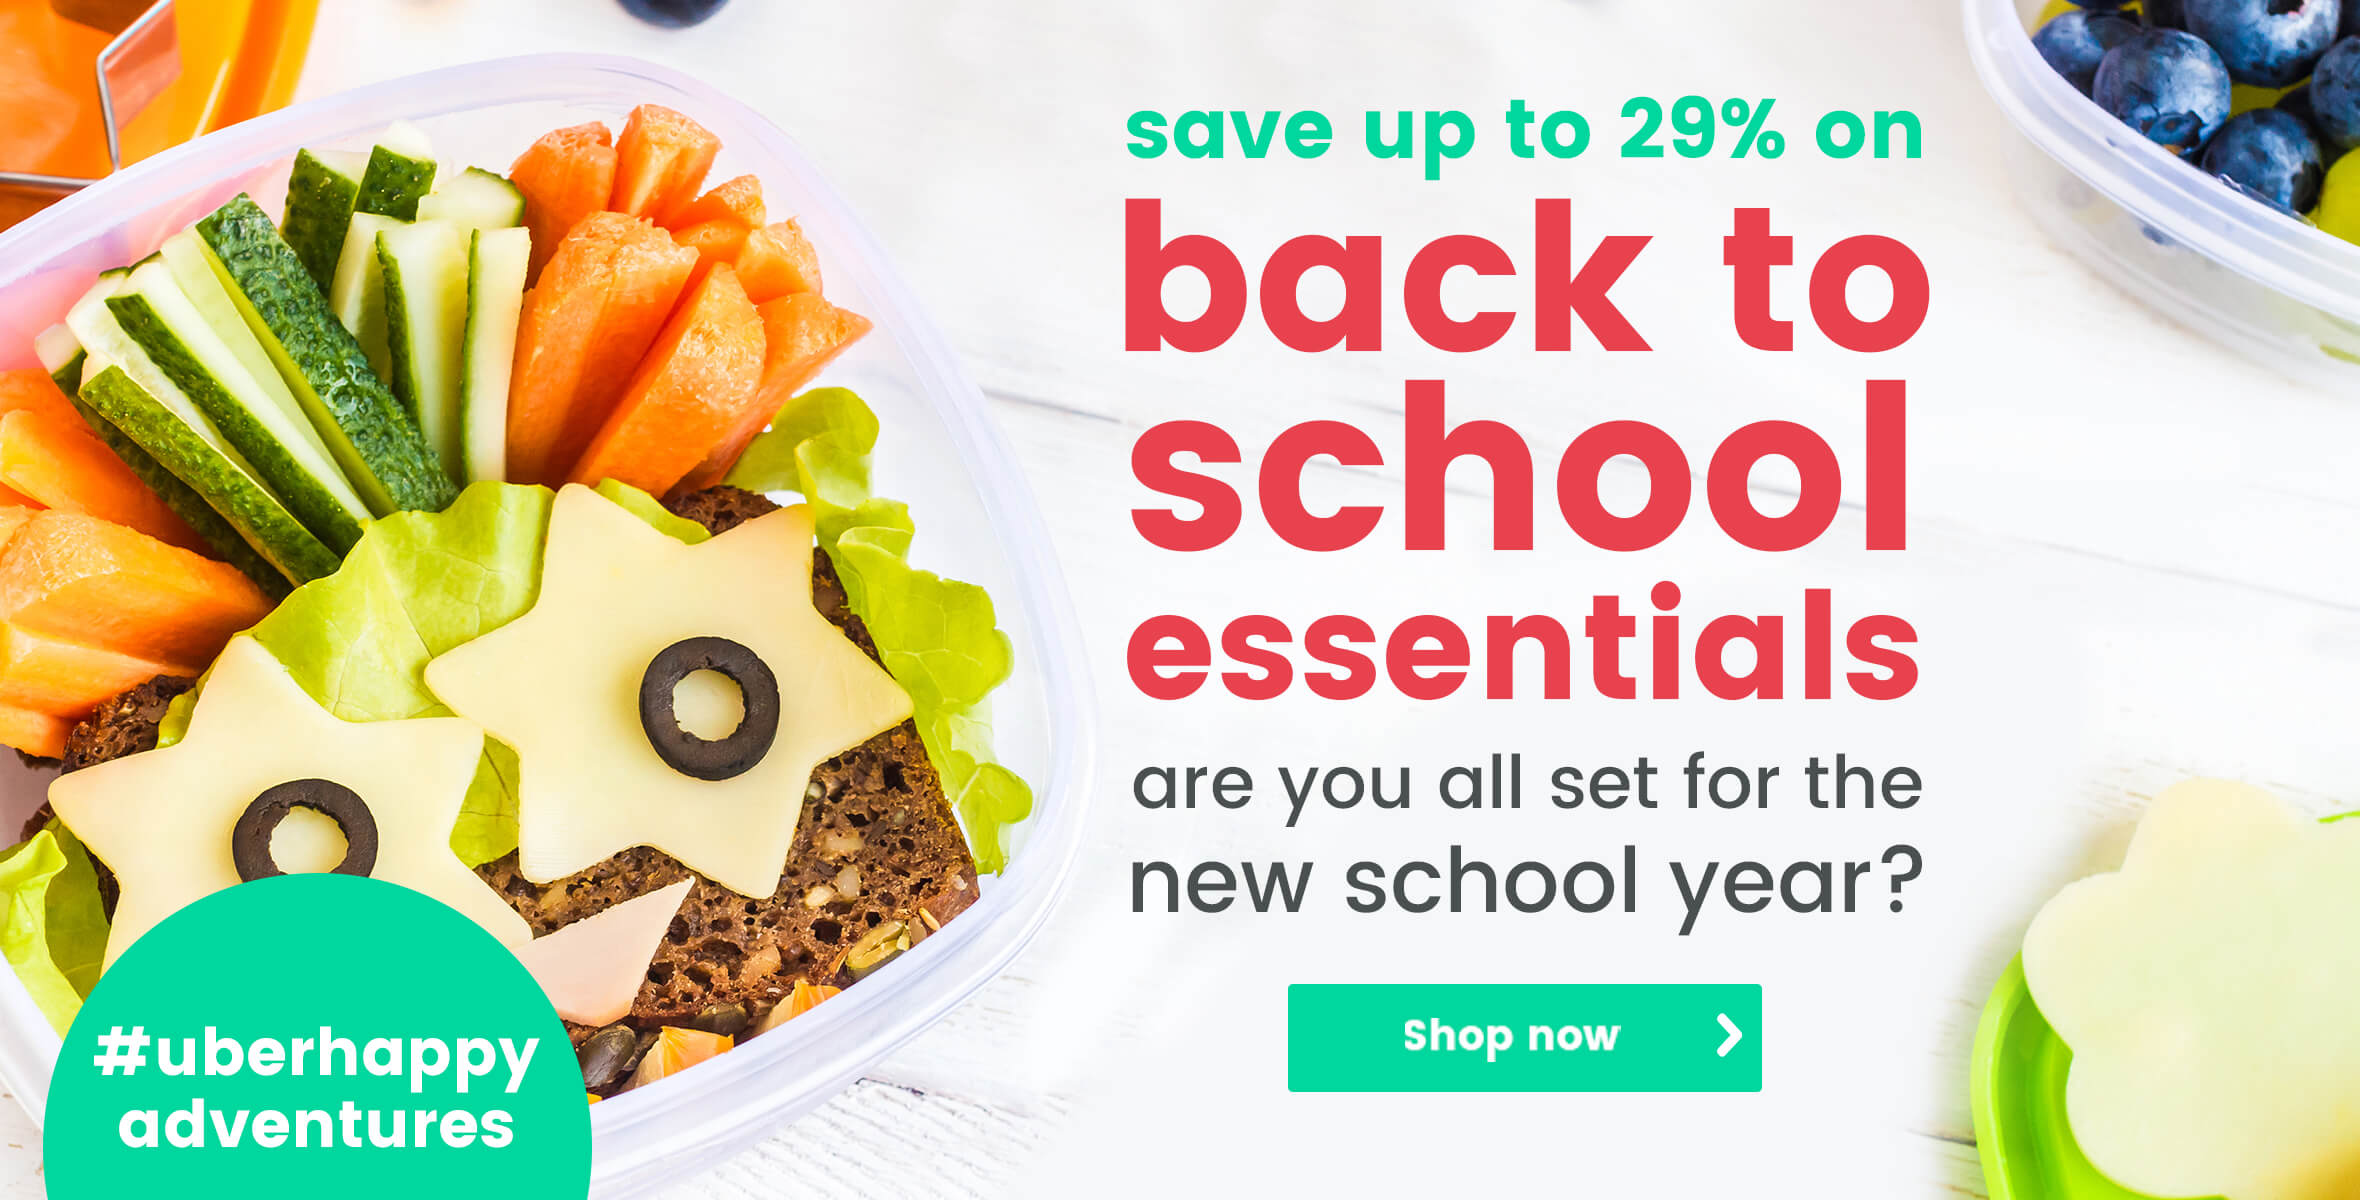 Save up to 29% on back to school essentials